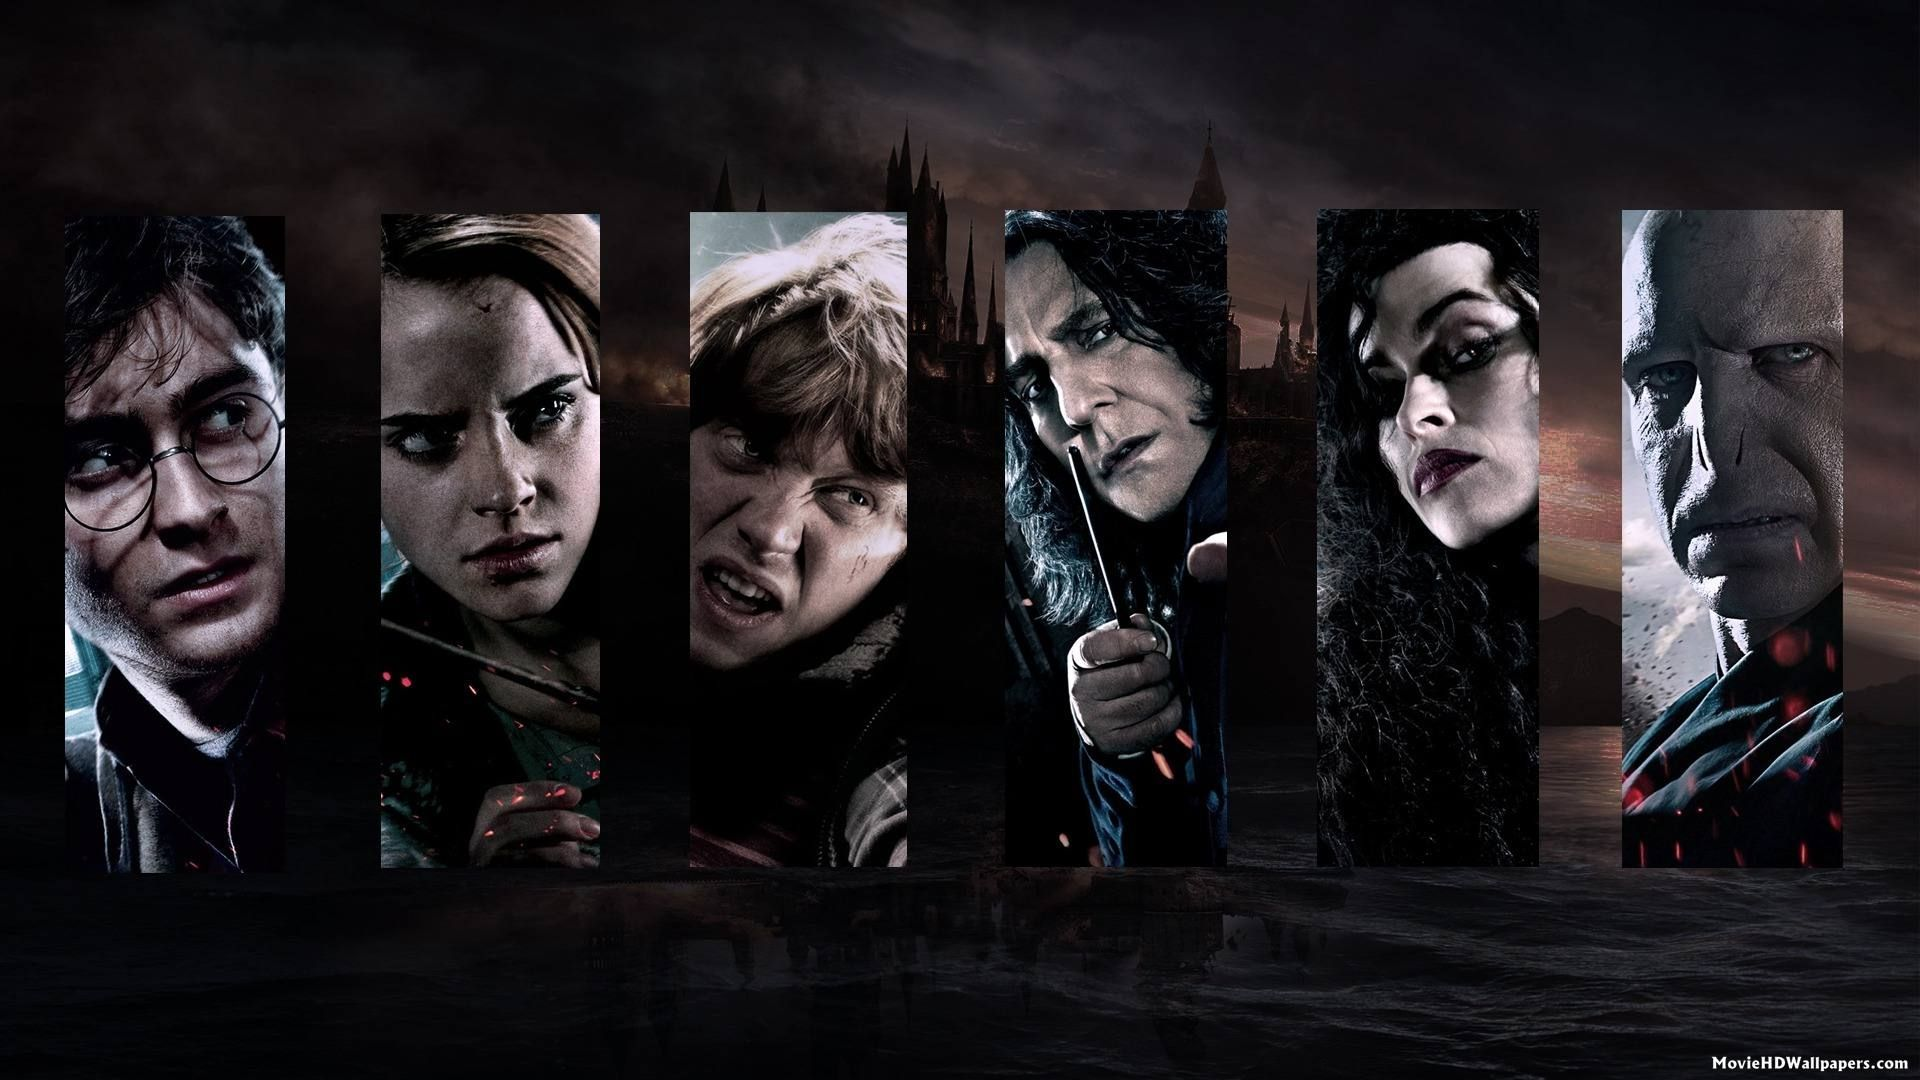 Harry Potter And The Deathly Hallows Part 2 Characters Harry Potter Wallpaper Harry Potter Phone Harry Potter Characters